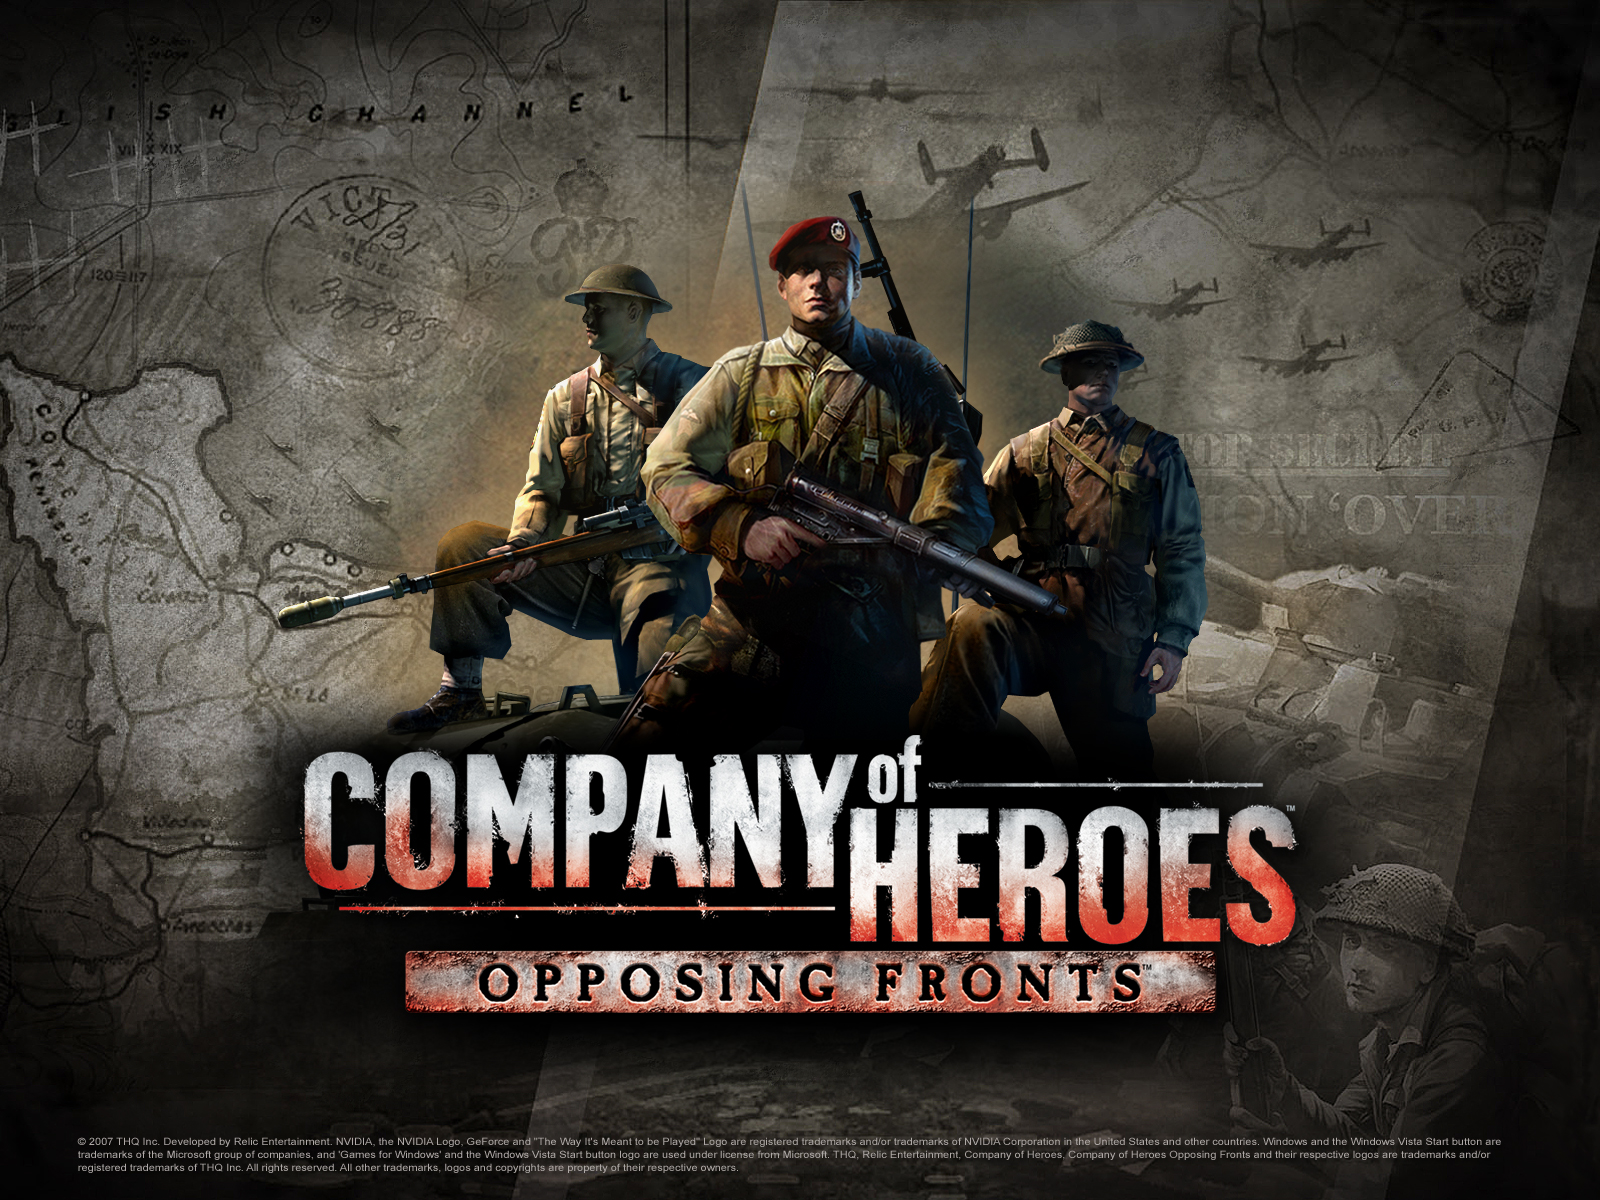 wallpaper 2 image - company of heroes: opposing fronts - mod db